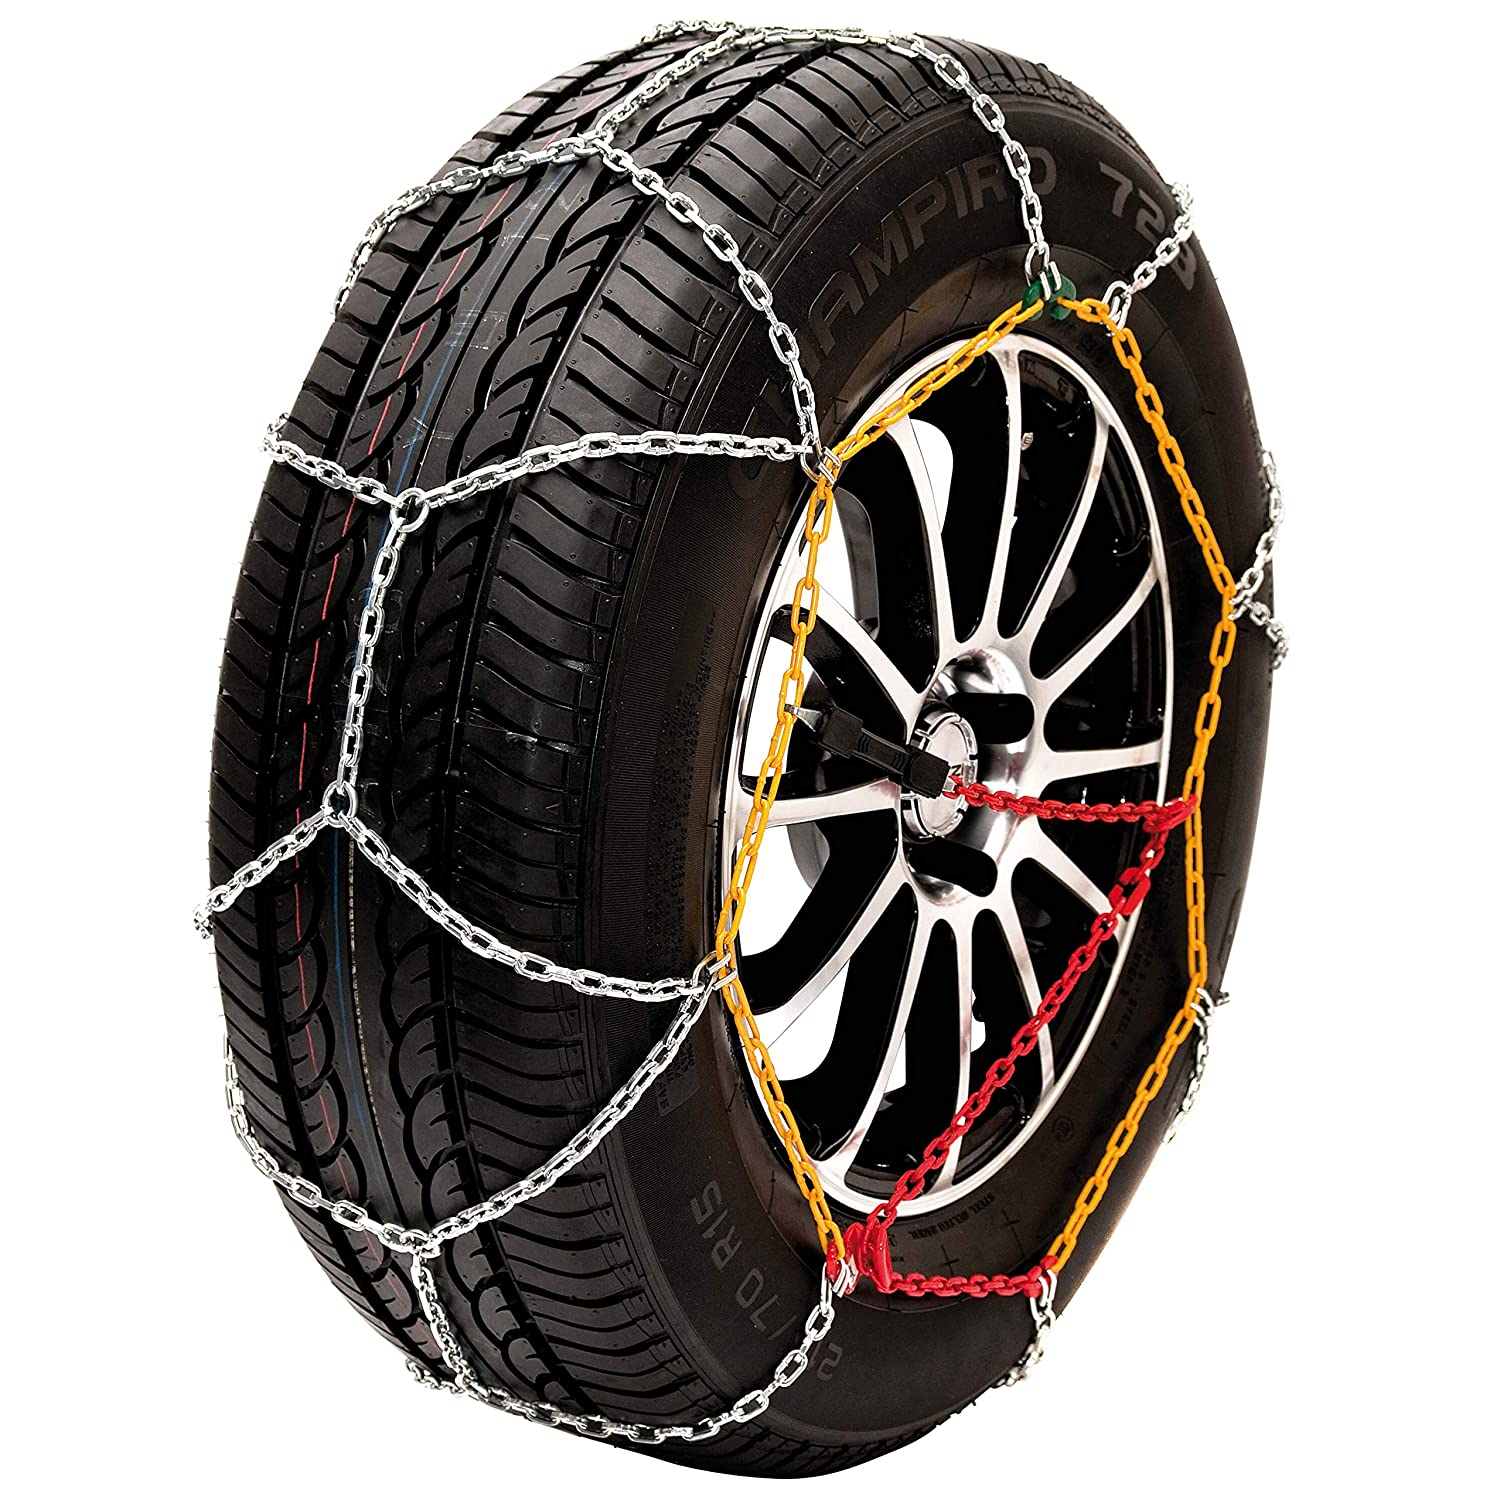 Husky Sumex Winter Classic Alloy Steel Snow Chains for 16' Car Wheel Tyres (205/55 R16)